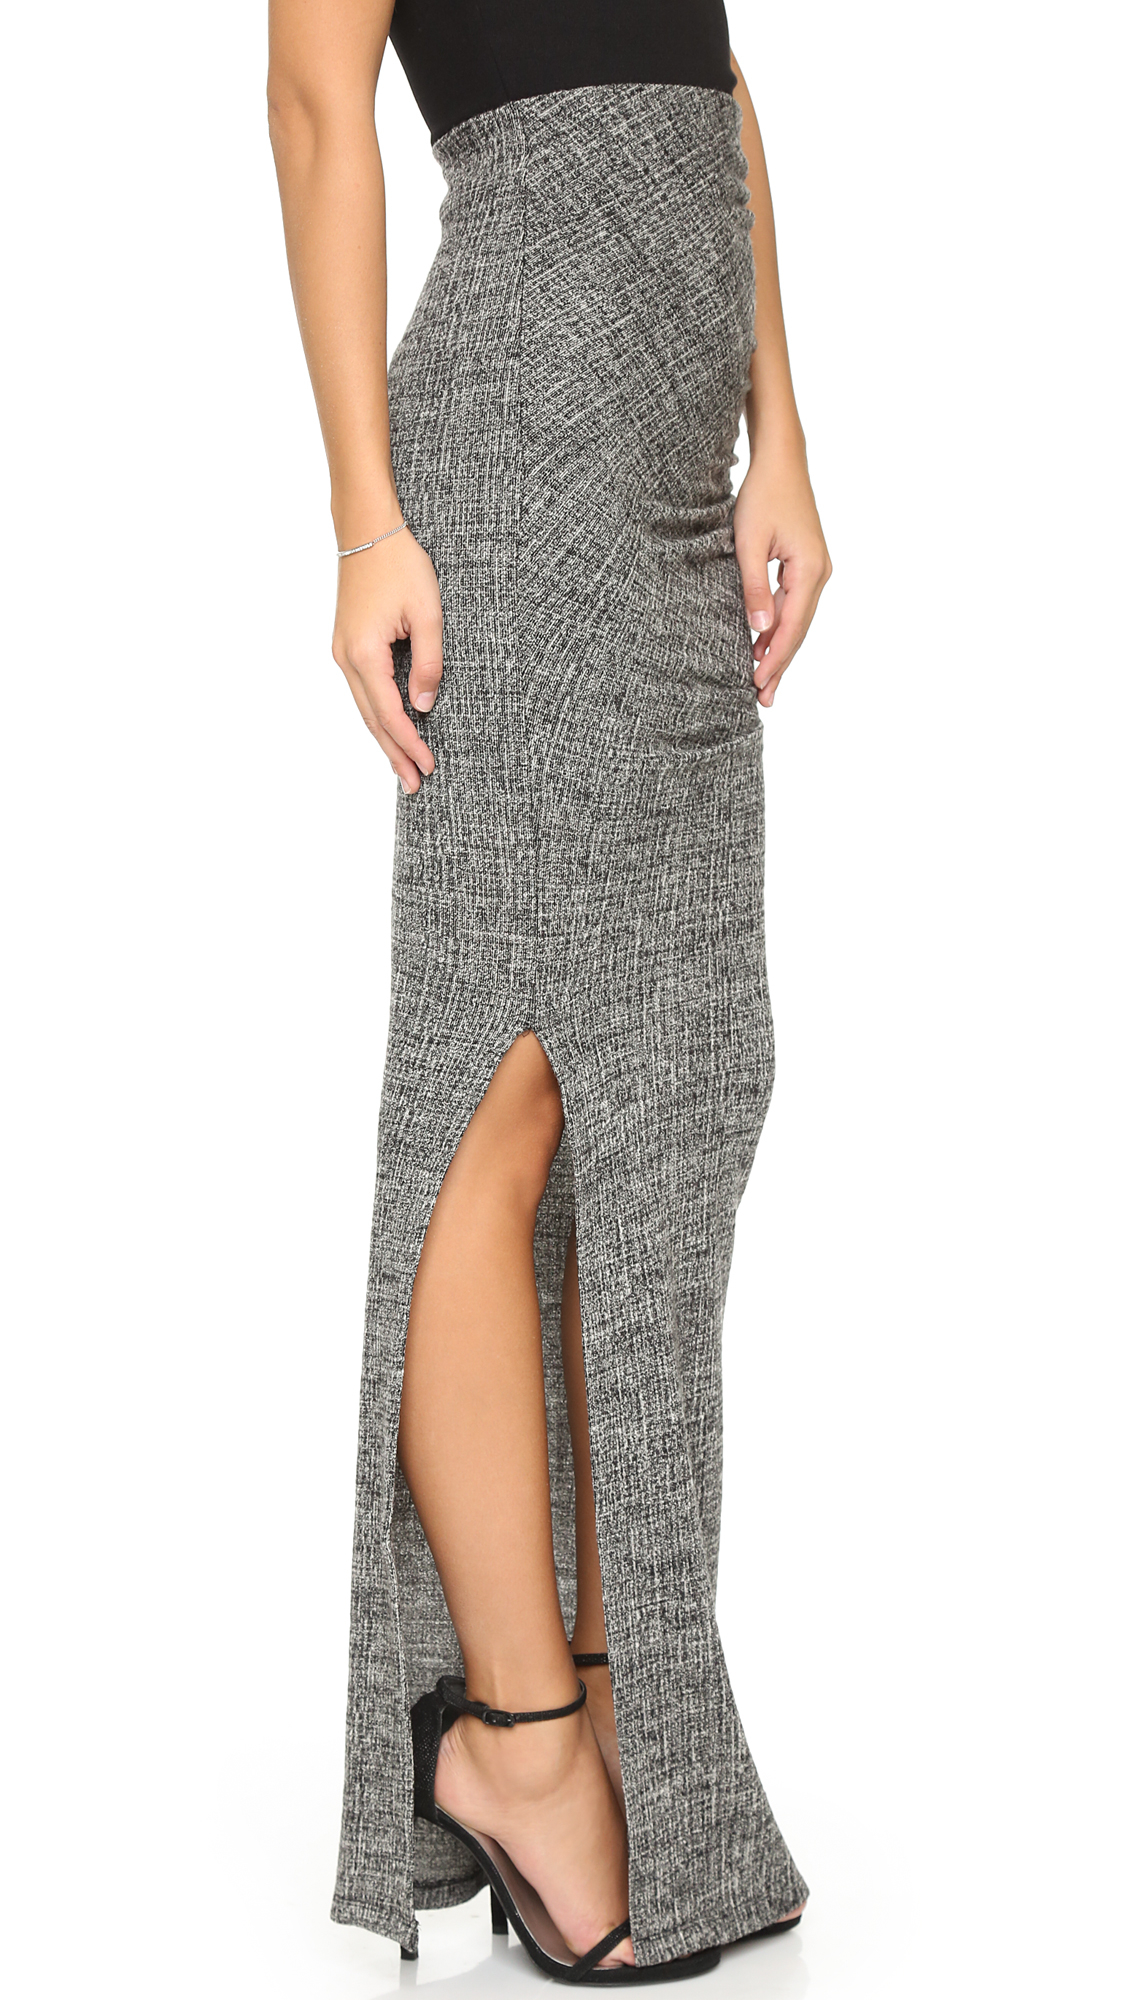 Alice   olivia Octavia Fitted Maxi Skirt - Grey Multi in Gray | Lyst